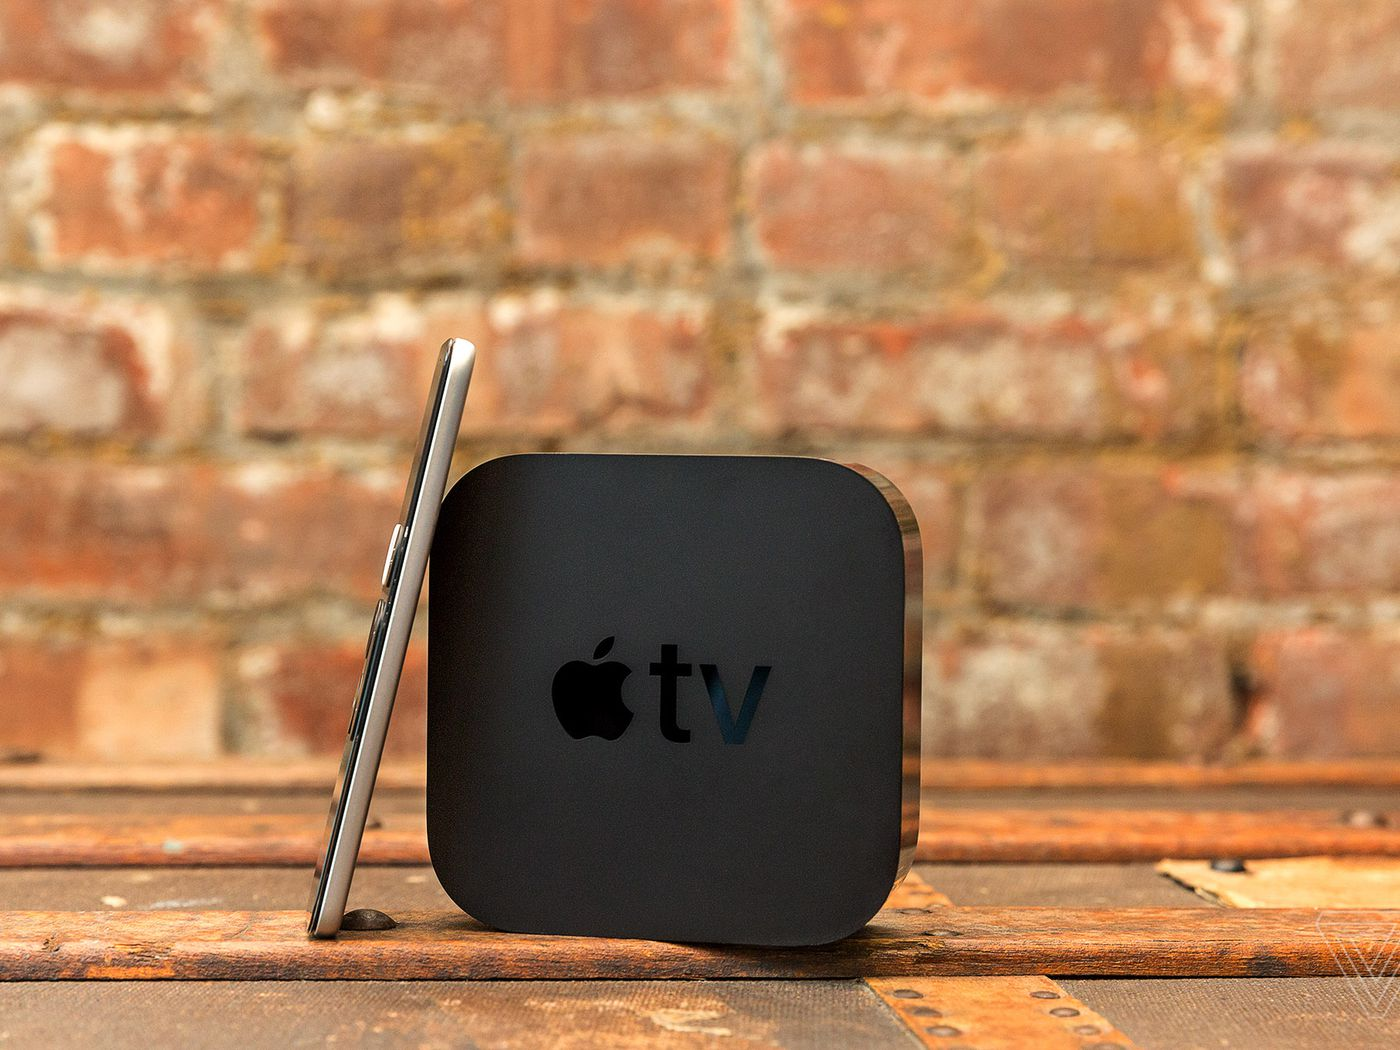 Apple TV Plus will reportedly cost $9 99 per month and